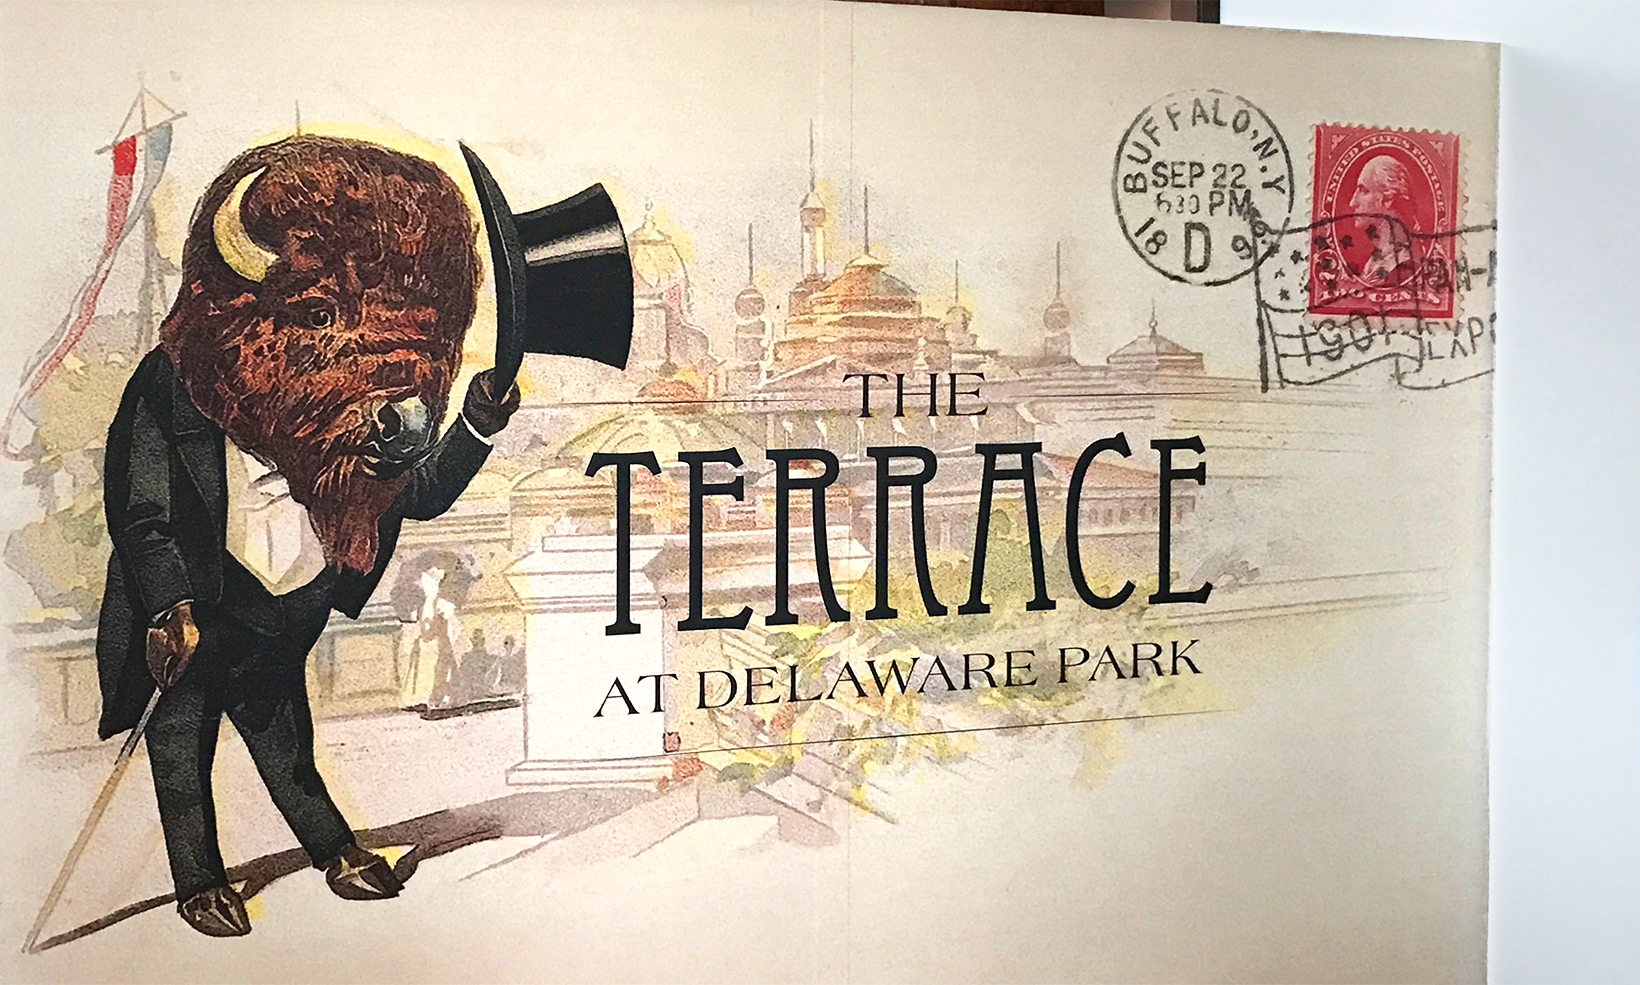 A wall mural featuring vintage art from a Buffalo tourism postcard welcomes diners to The Terrace restaurant